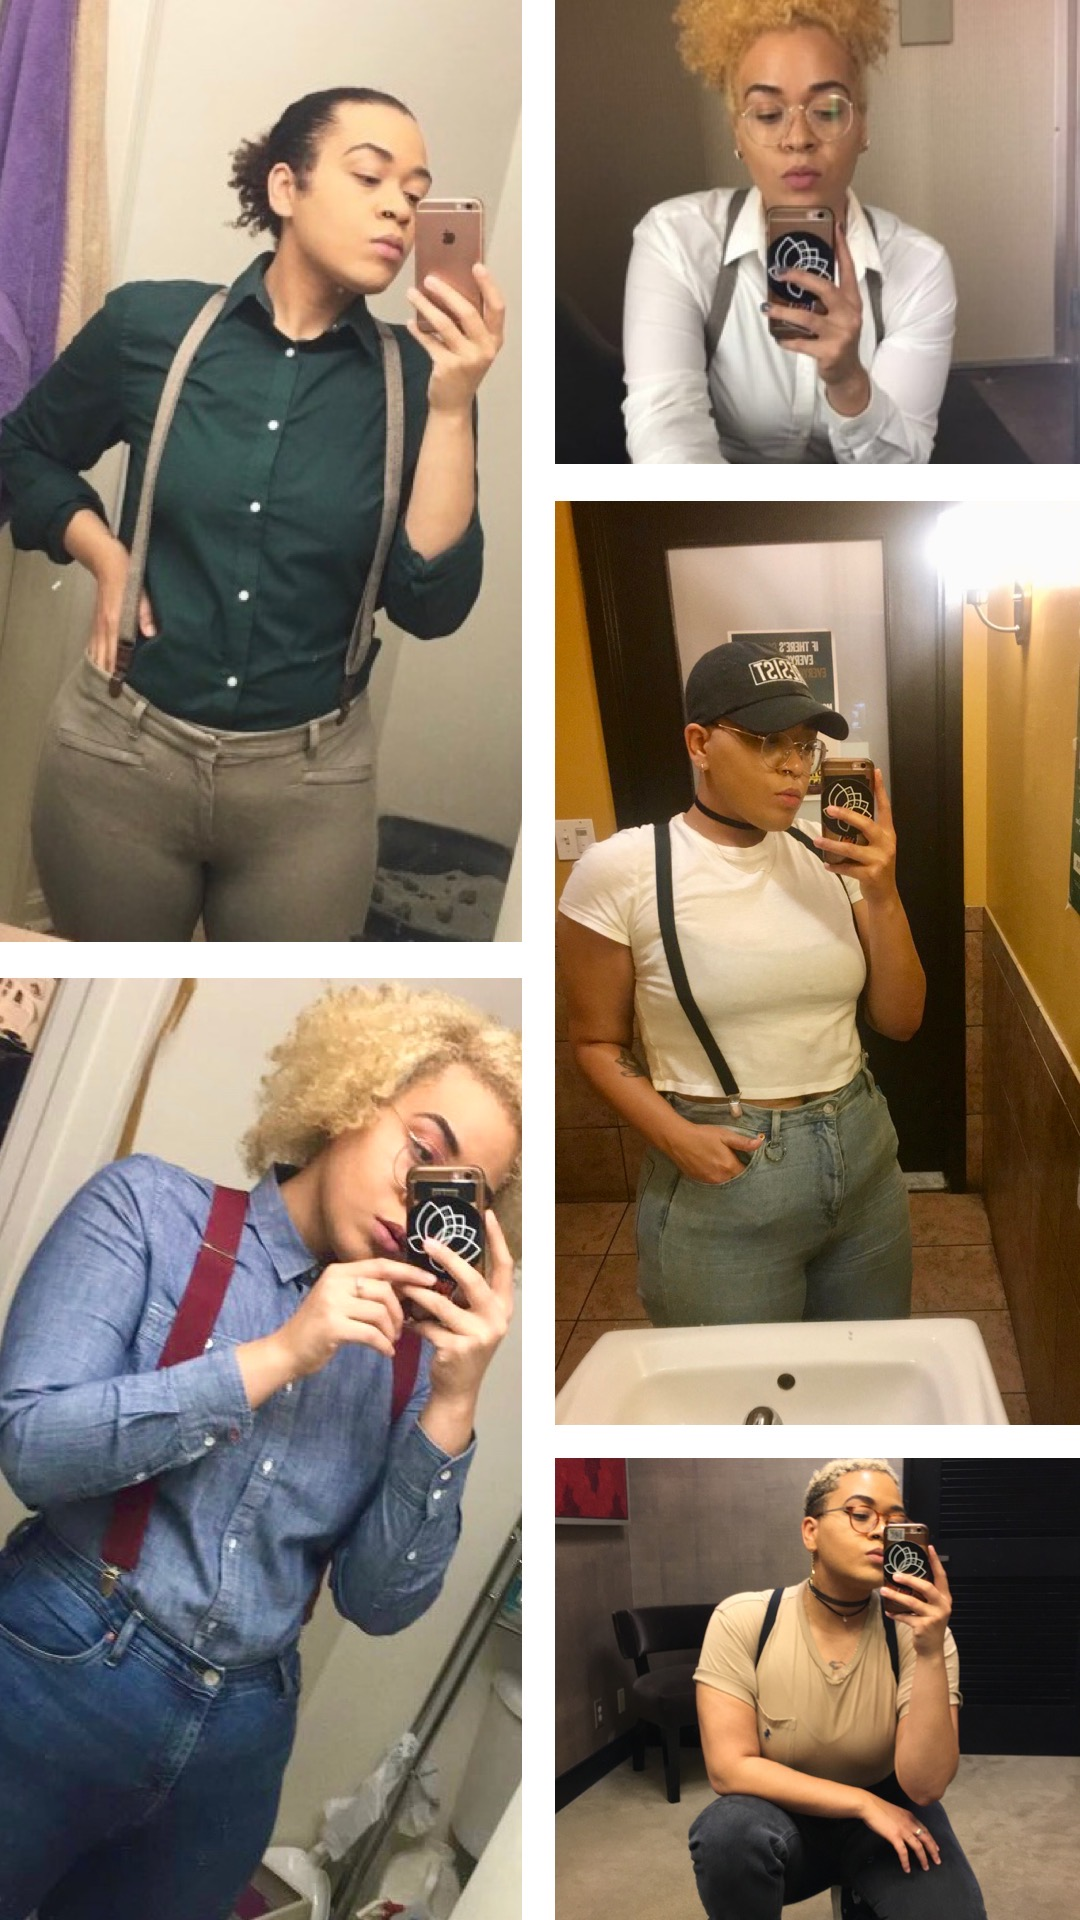 A five-photo collage of an agender person in various poses and outfits with suspenders being worn